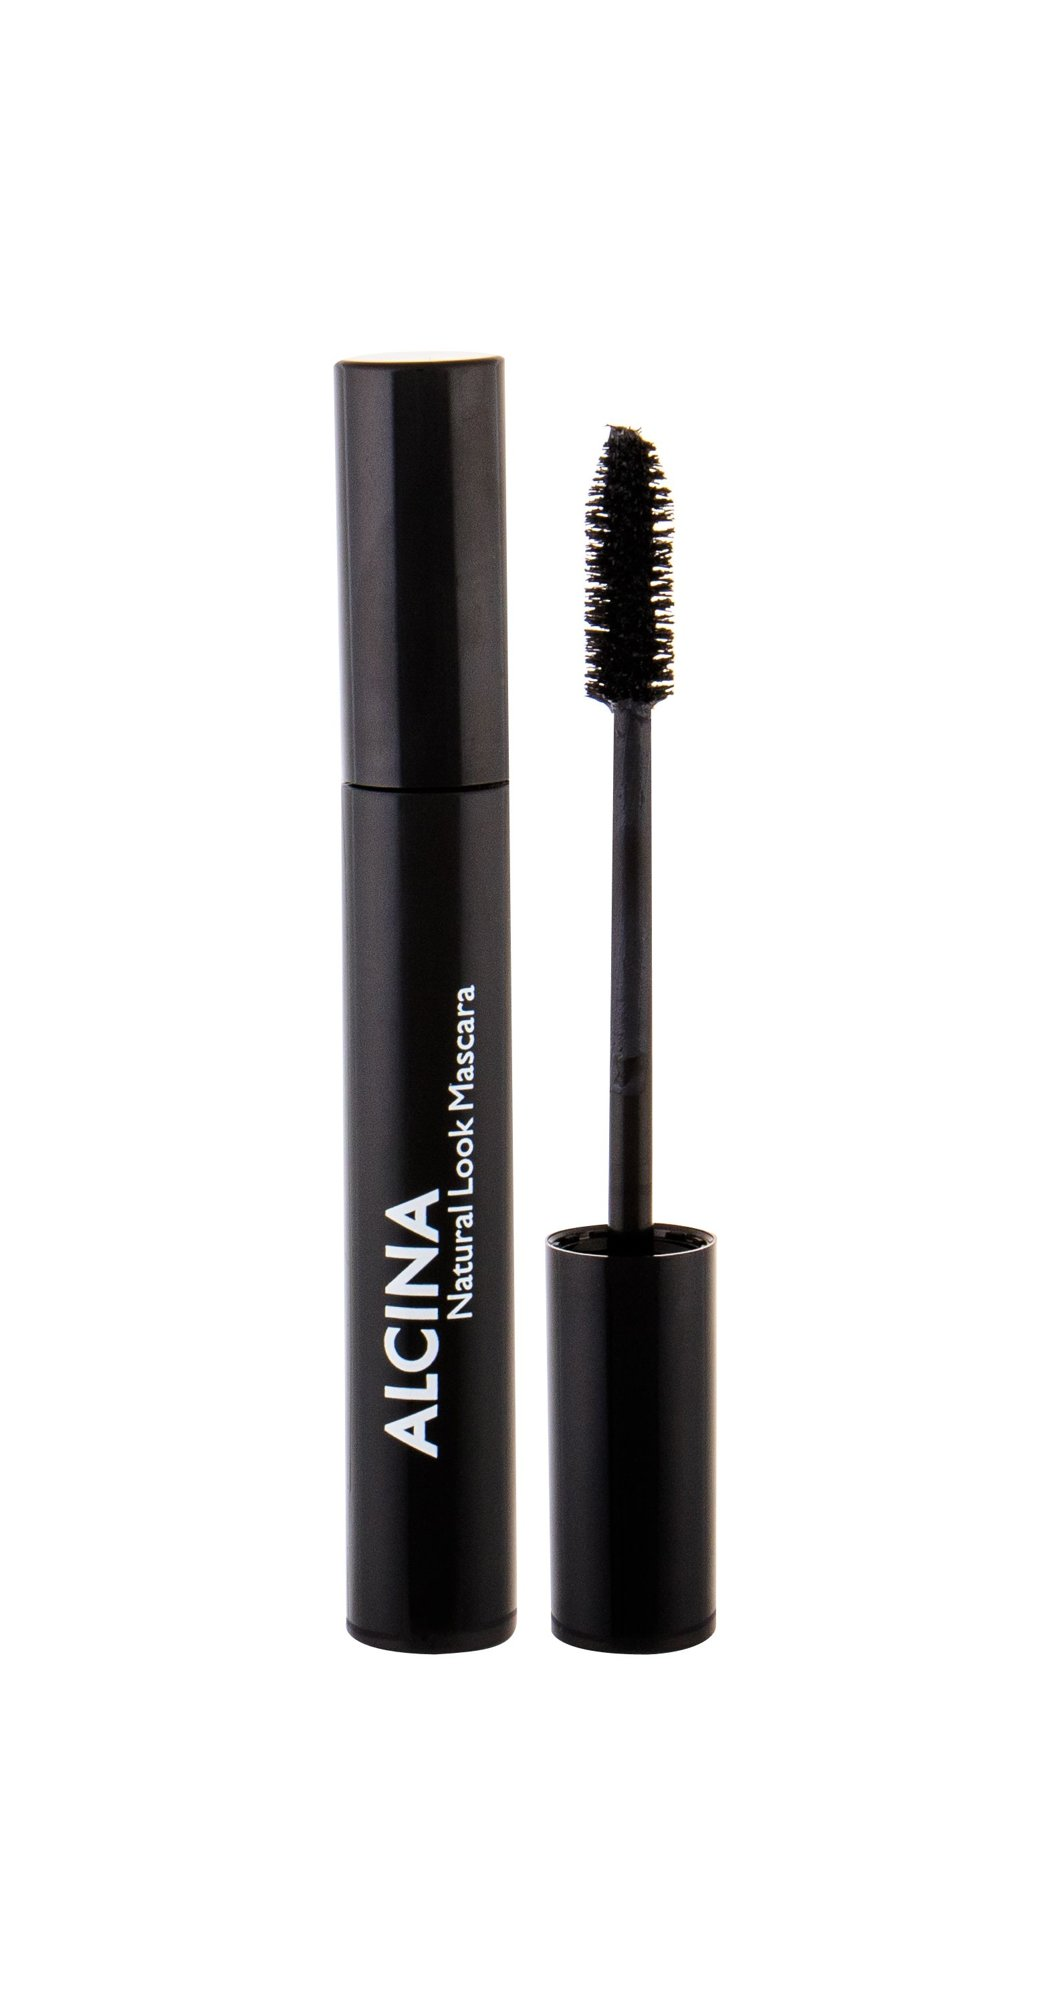 ALCINA Natural Look Mascara 8ml 010 Black